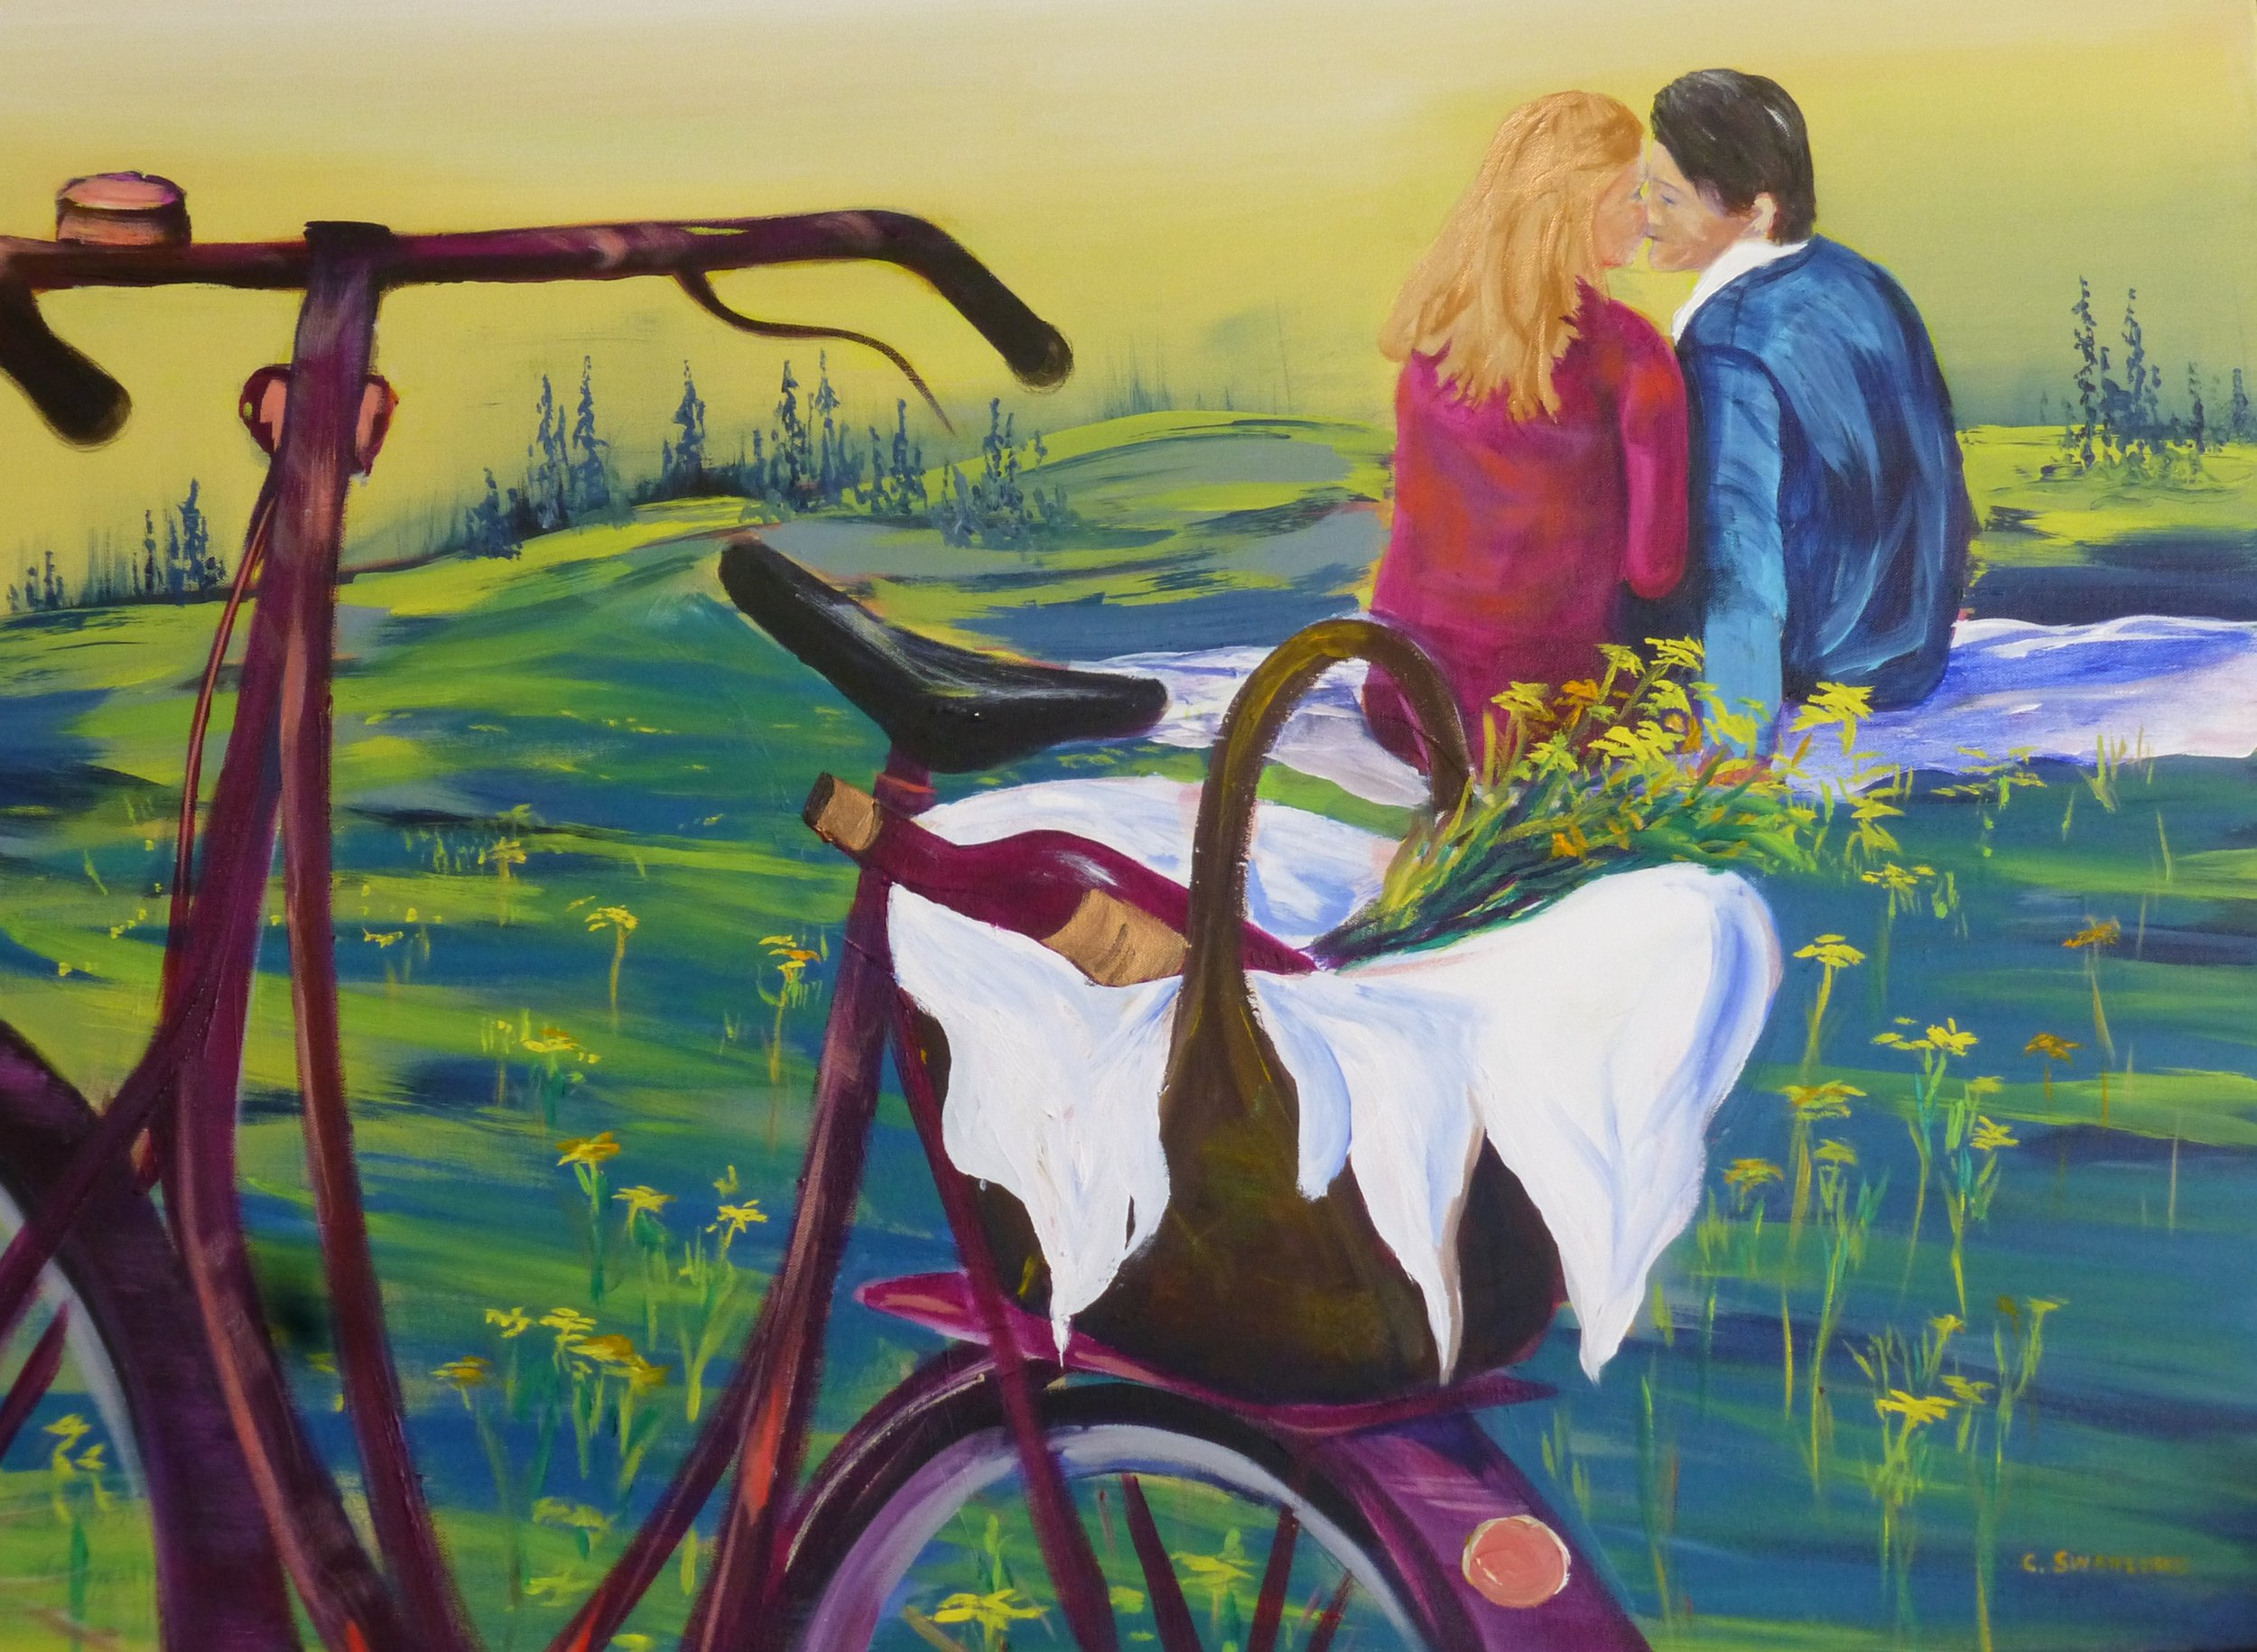 """available- $1050.00 -Lover's Picnic - 30"""" x 40"""" on canvas - available in Canmore Market Bistro, Canmore, AB"""